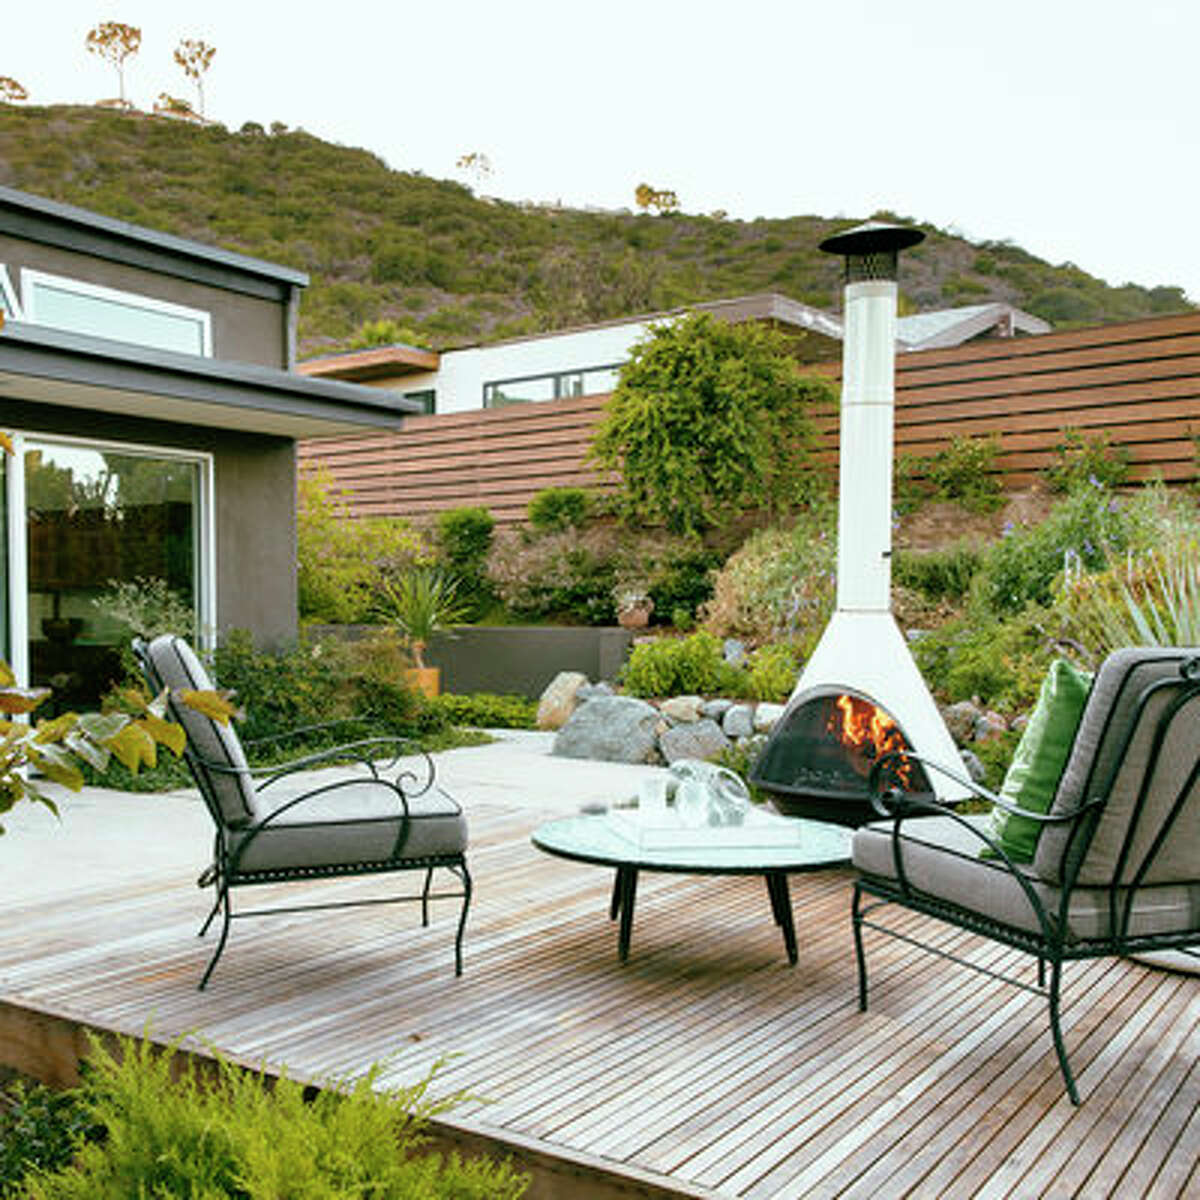 Cozy gathering space This mid-century home's deck was built from plans in Sunset's How to Build Decks for Outdoor Living, published in 1972. Large sliding doors open from the kitchen onto the space featuring a chic outdoor cone fireplace, where guests tend to migrate after dinner.